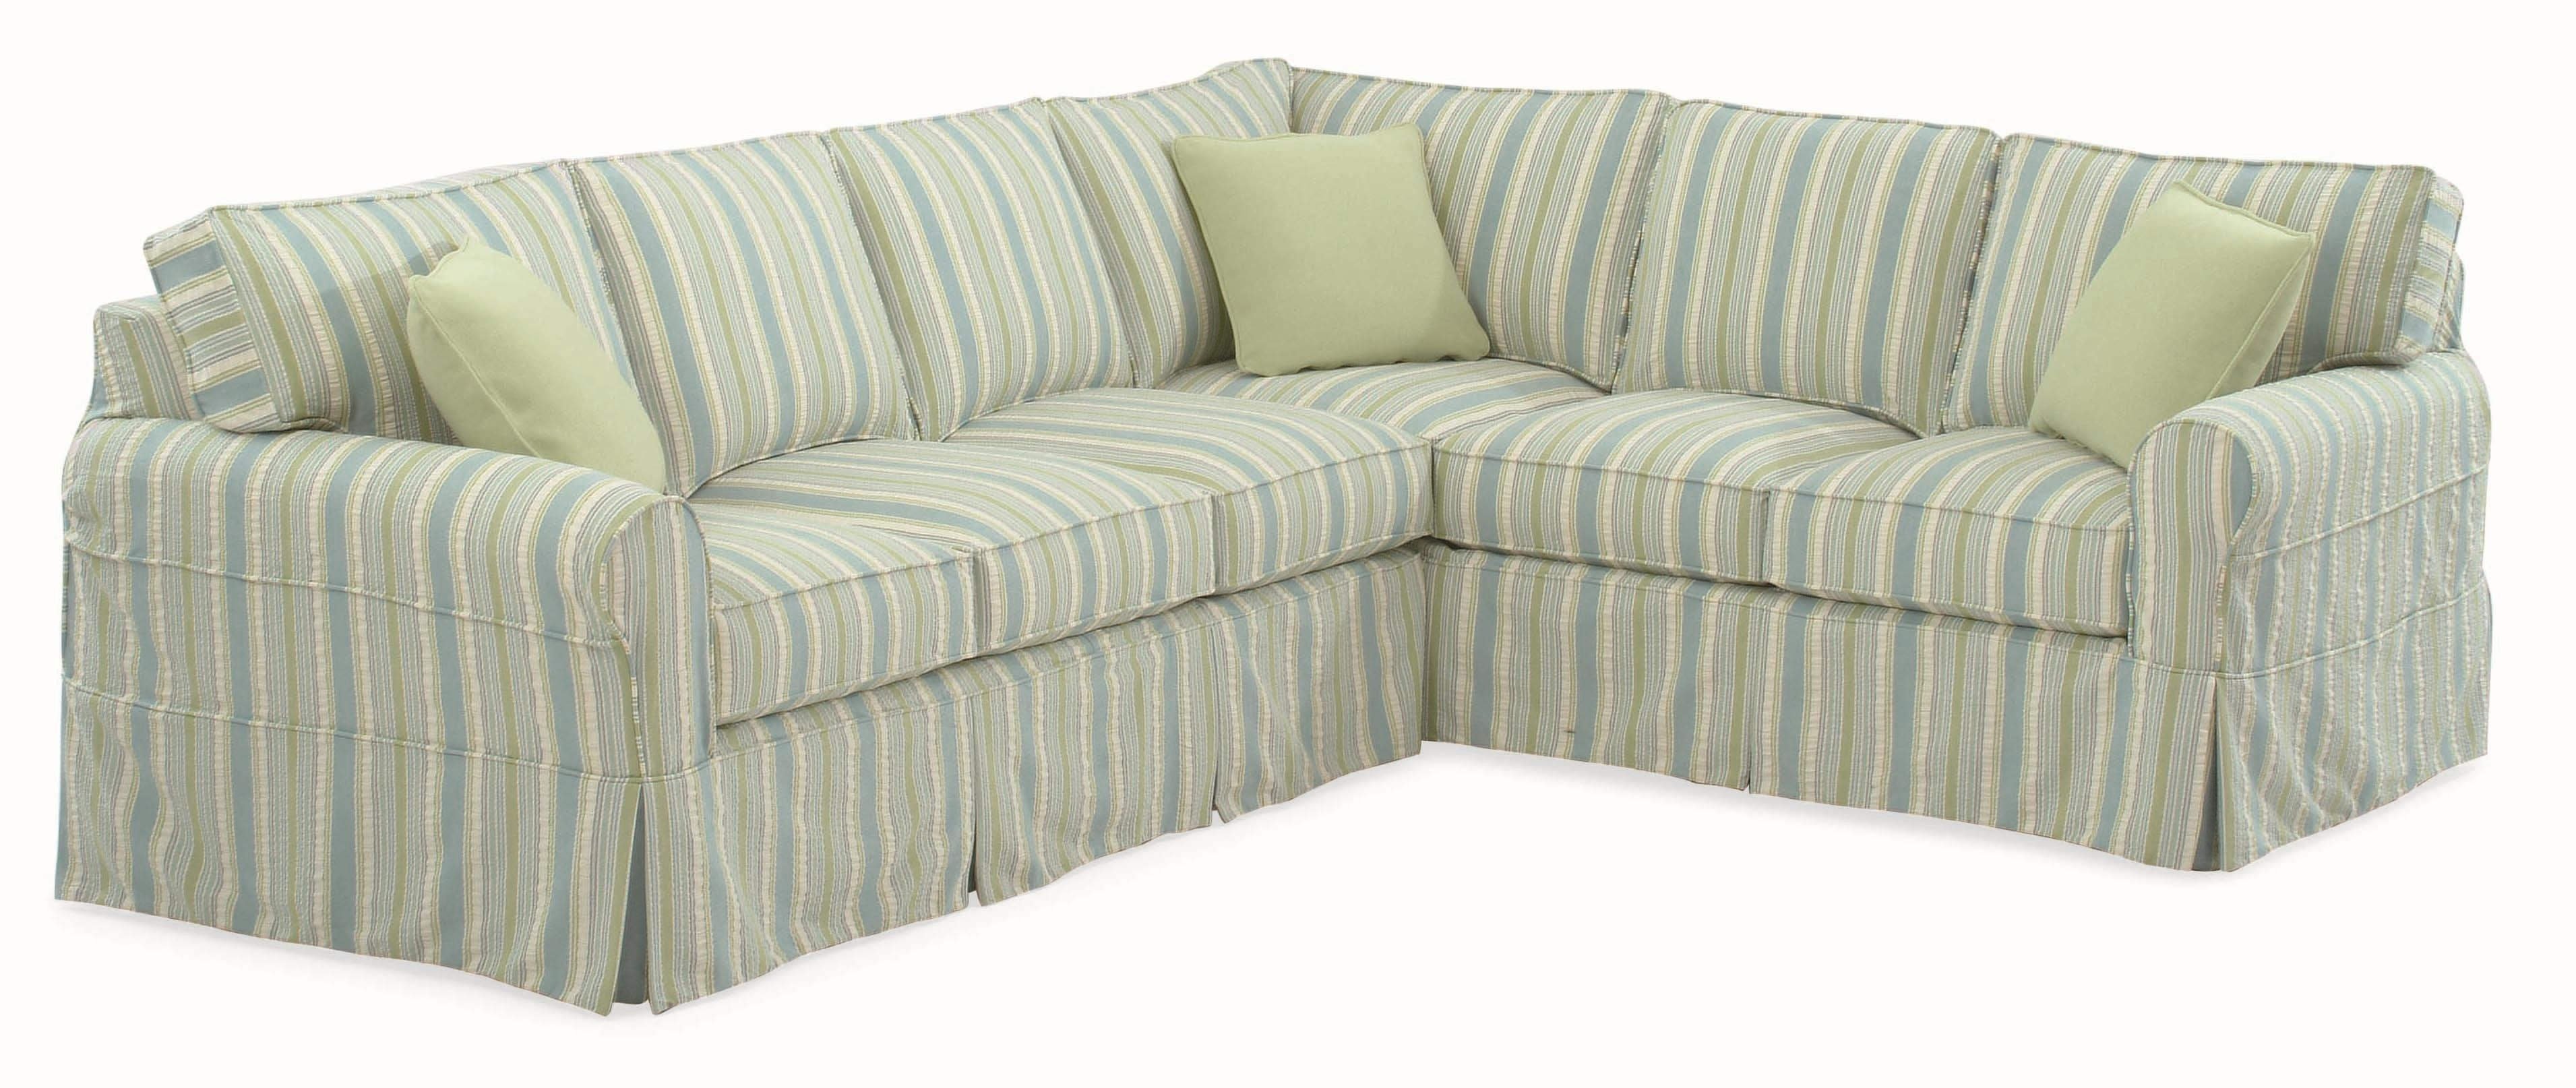 Braxton Culler 728 Casual Sectional Sofa With Rolled Arms And Inside Braxton Sofas (Image 1 of 20)